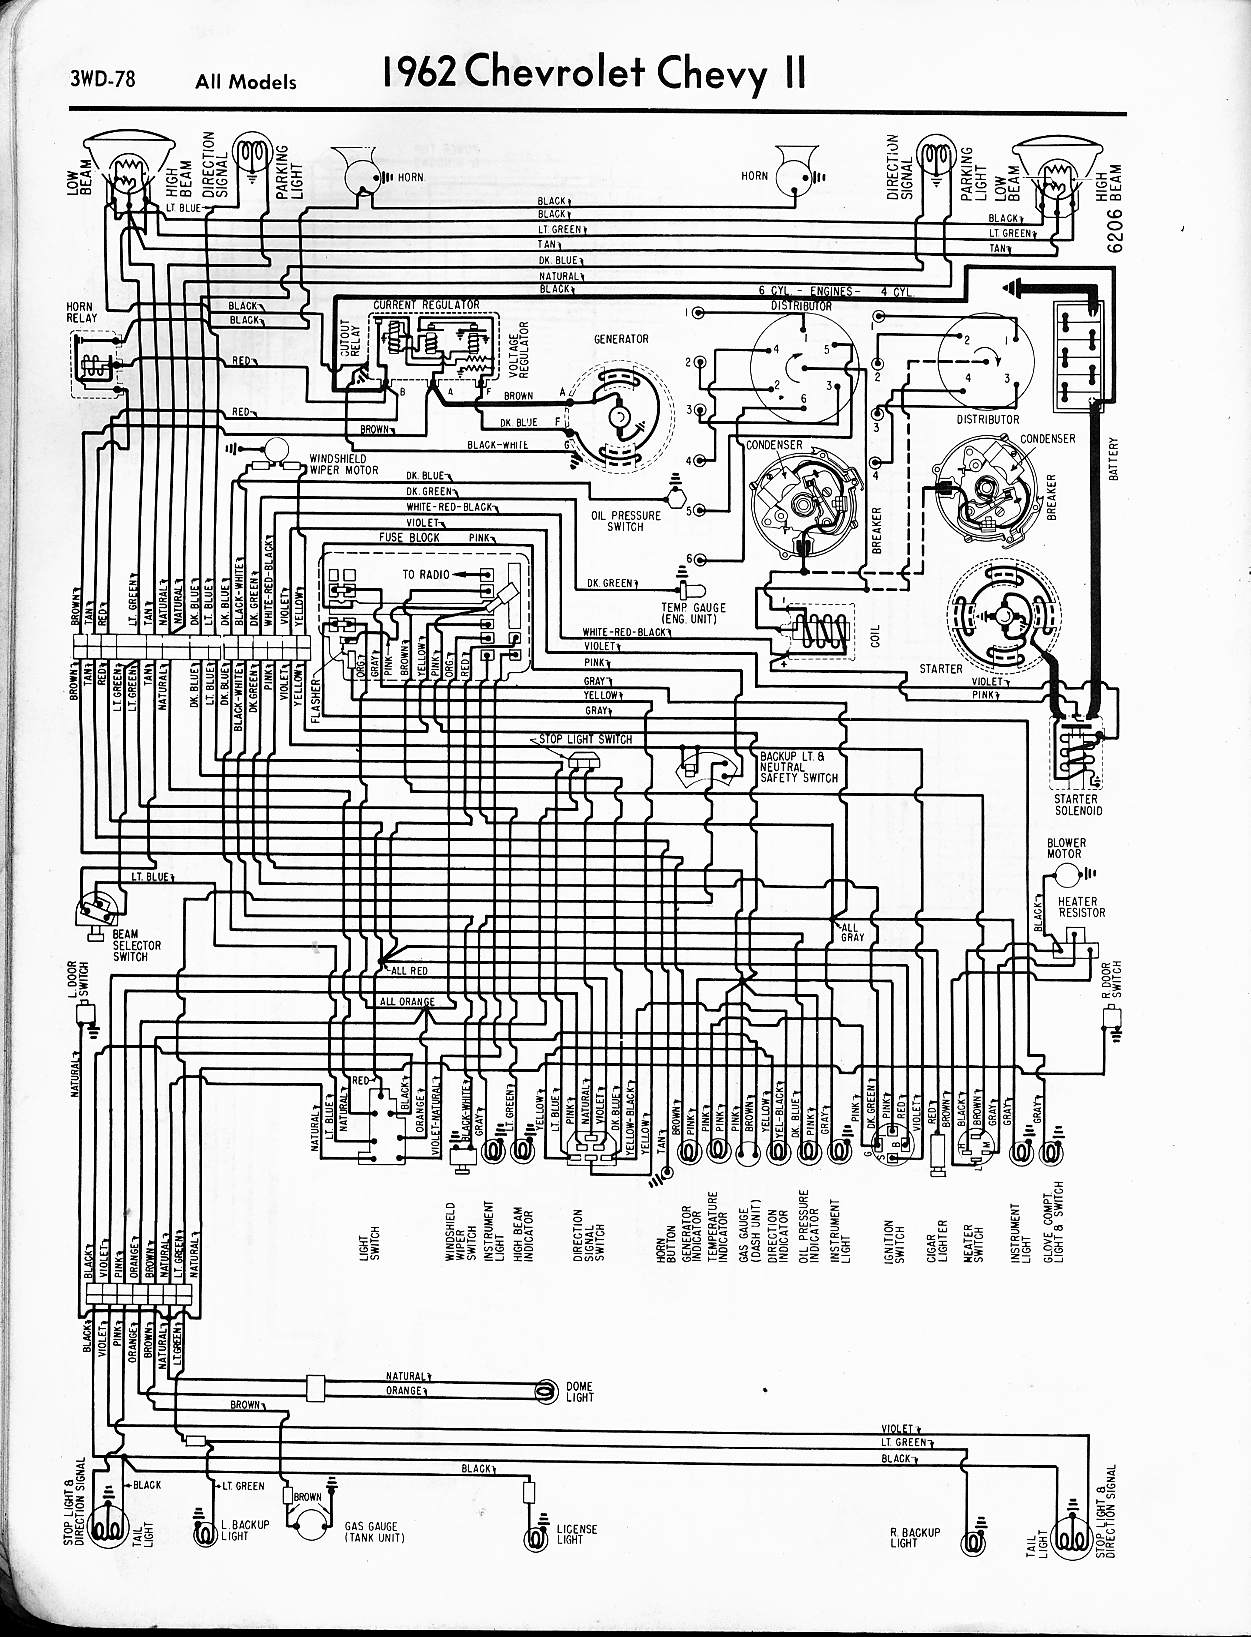 Brilliant 1976 Nova Wiring Diagram Wiring Diagram Tutorial Wiring Cloud Oideiuggs Outletorg